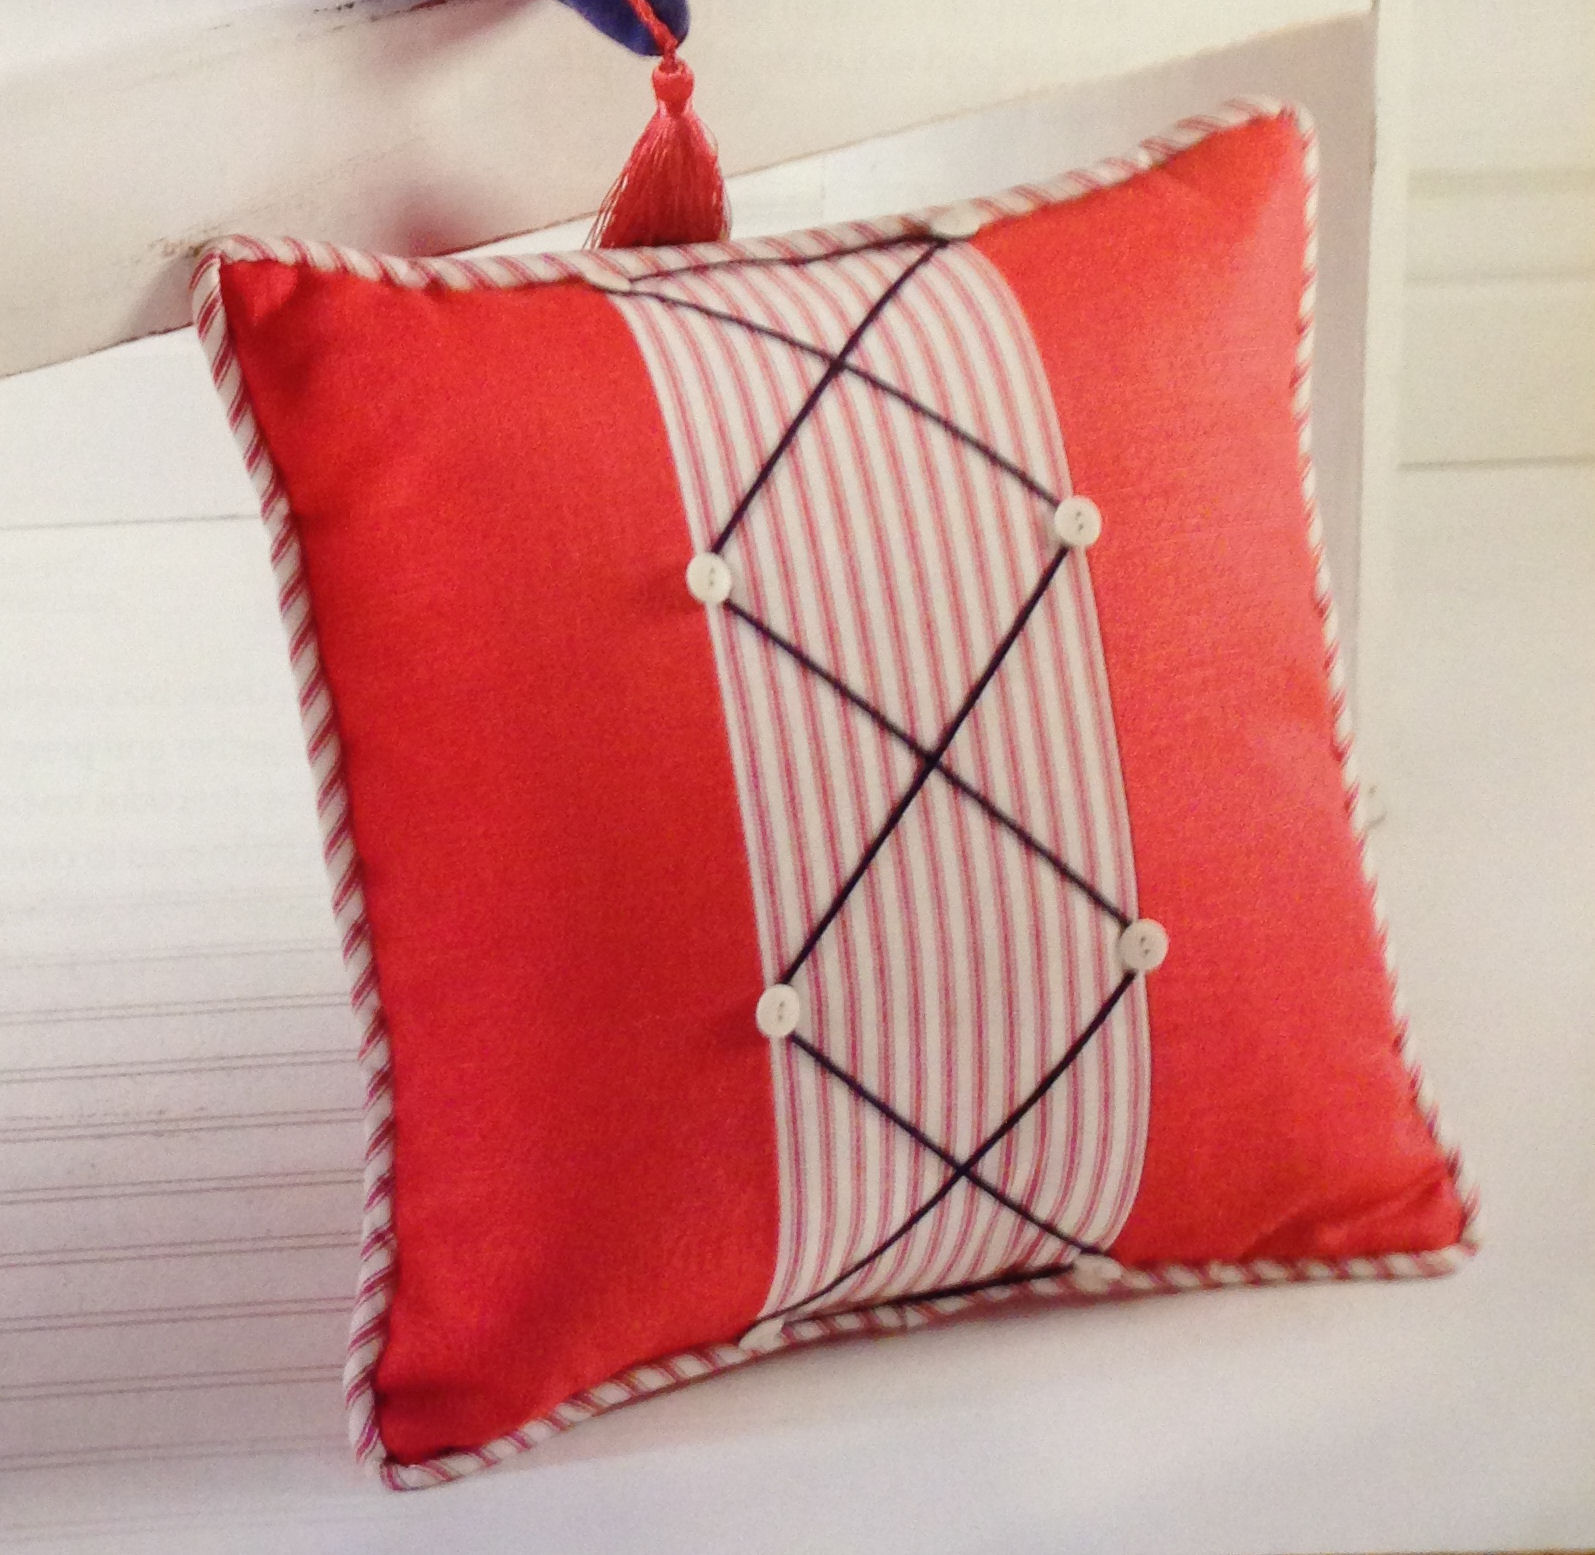 Book giveaway sew easy designer pillows judy nolan